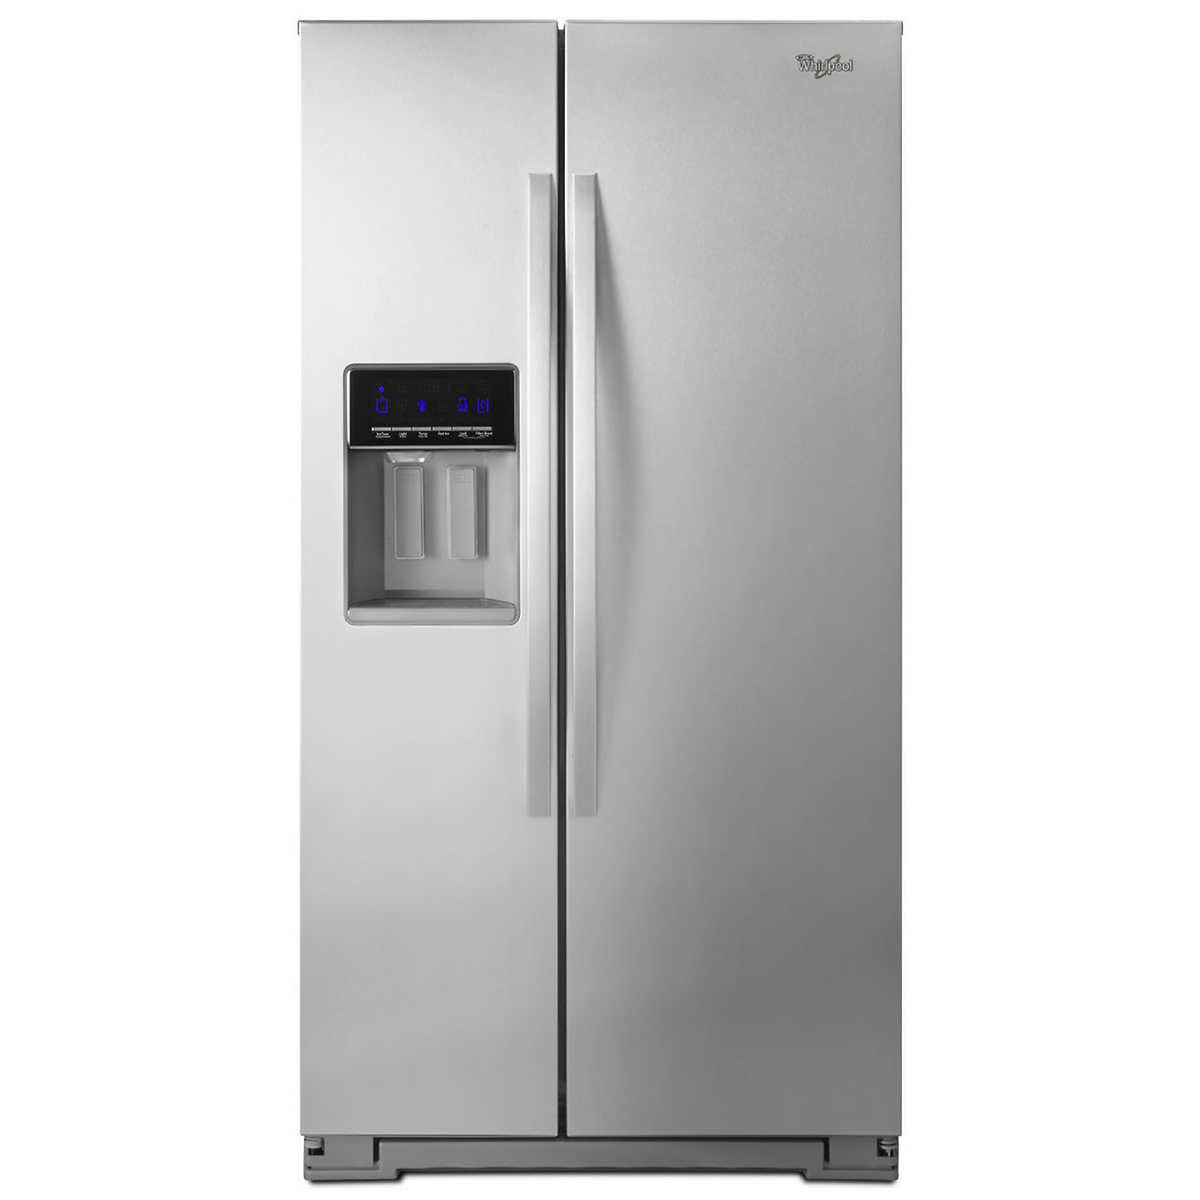 Whirlpool white ice costco - Whirlpool 21cuft Counter Depth Side By Side Refrigerator In Stainless Steel